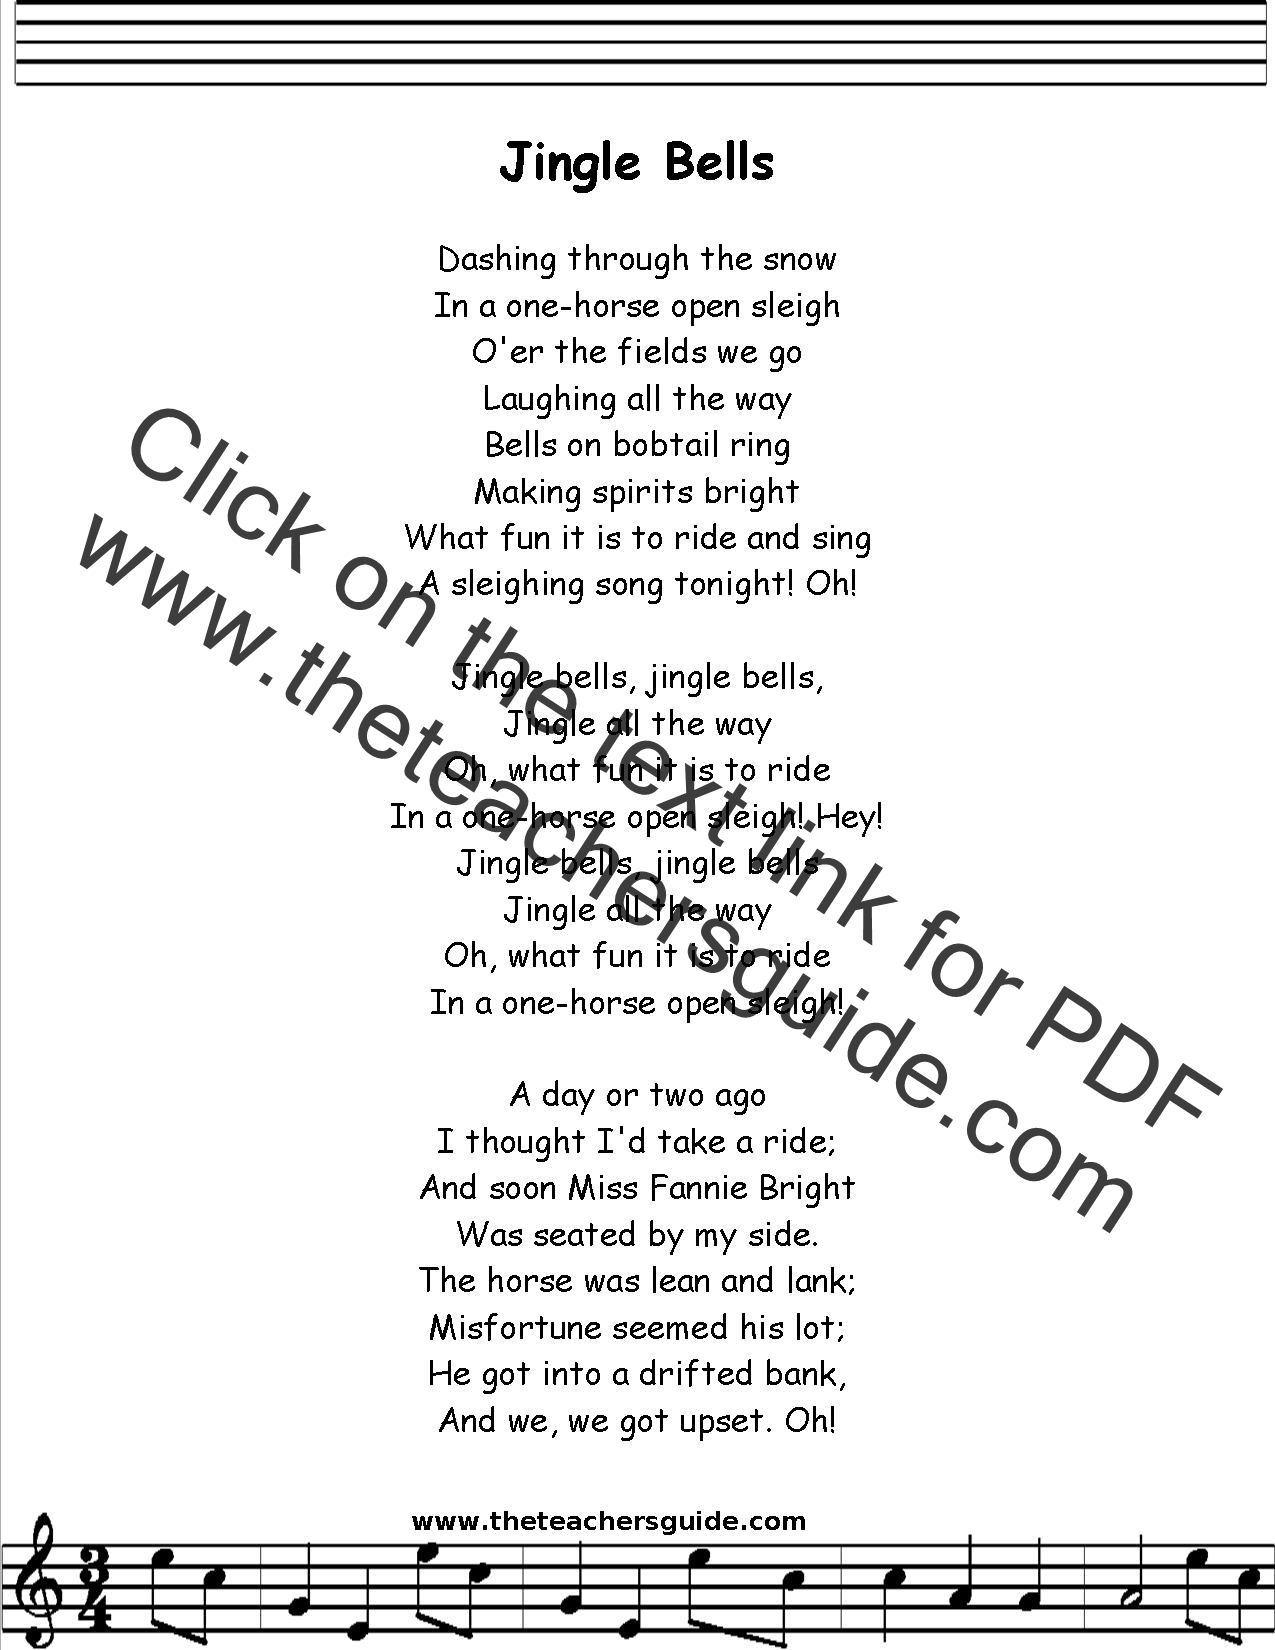 Jingle Bells Lyrics, Printout, MIDI, and Video